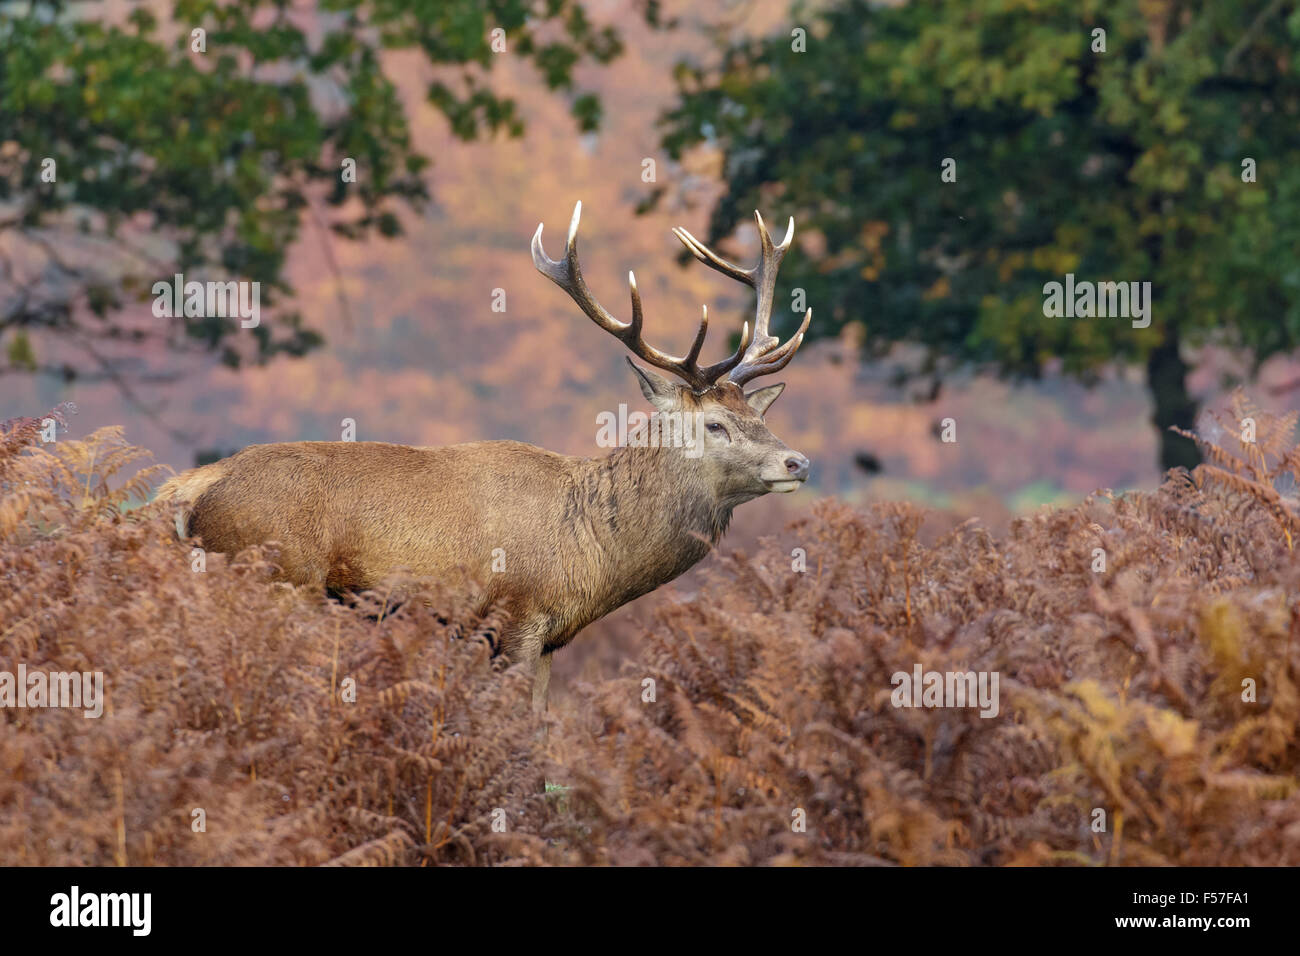 Red Deer stag among the bracken in autumn. - Stock Image